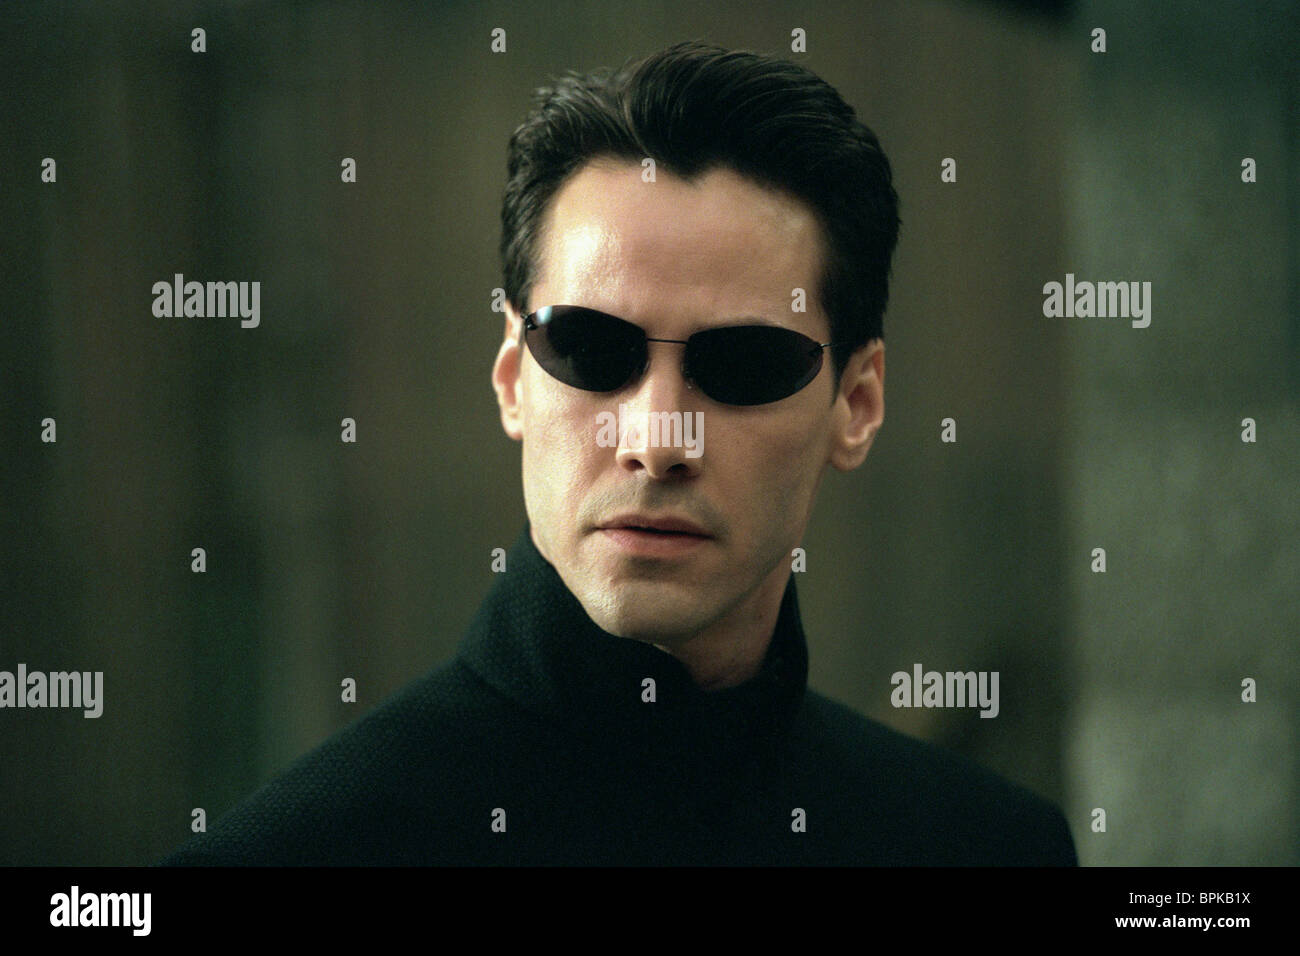 keanu reeves the matrix reloaded 2003 stock photo 31158566 alamy